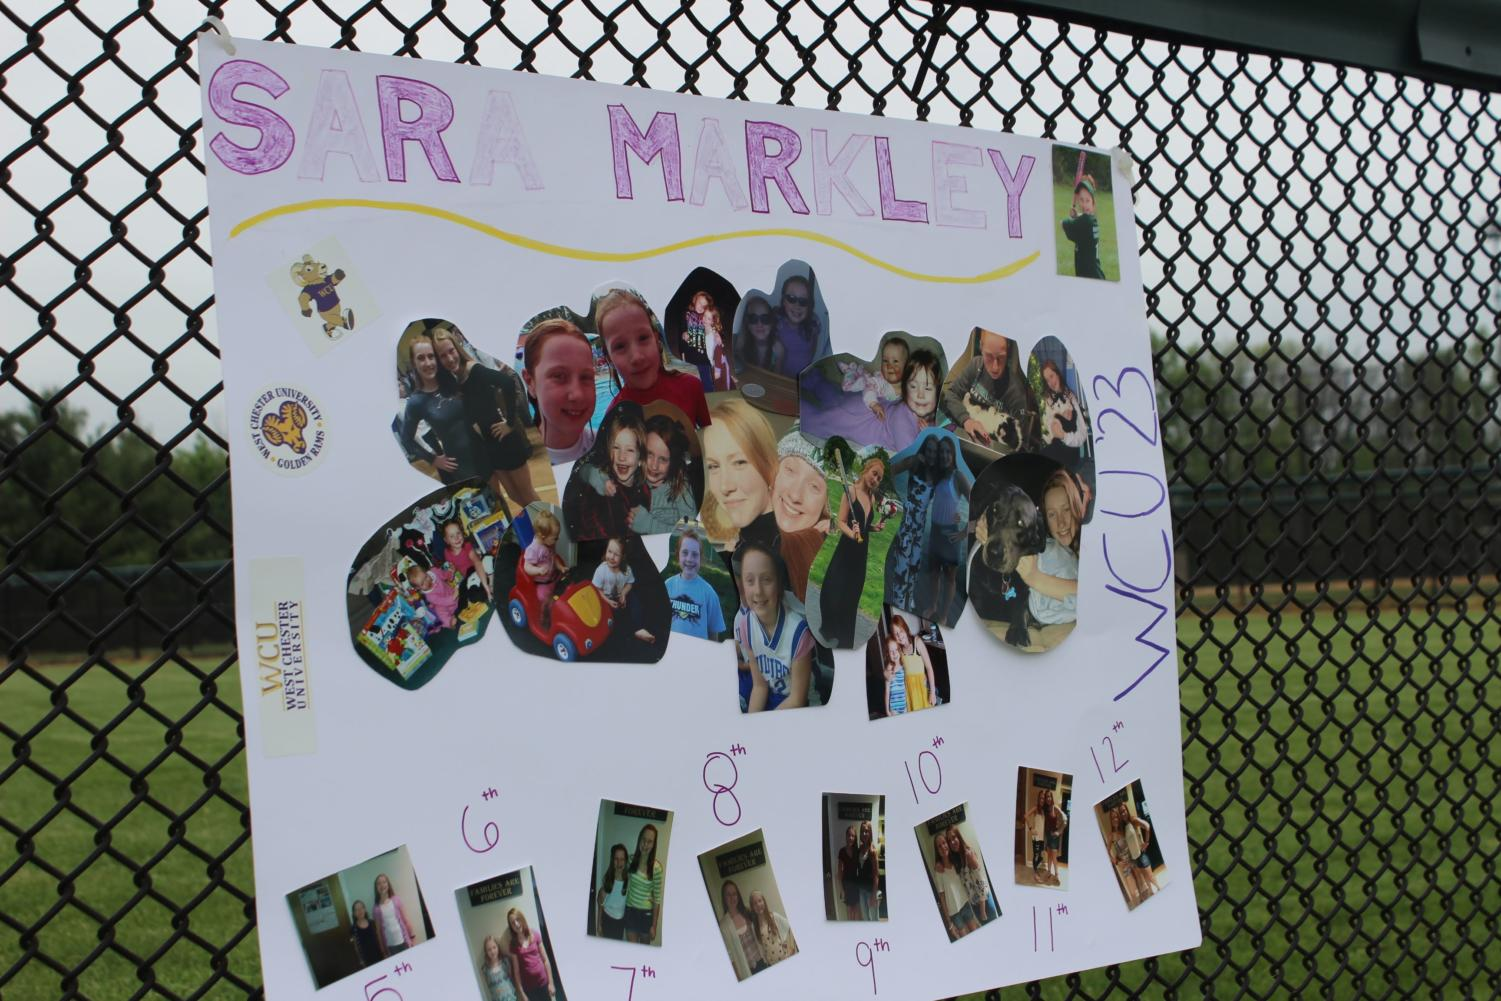 A+poster+of+Sara+Markley+displayed+a+collage+of+pictures+to+celebrate+Sara+and+her+sister+Aly+Markley%27s+time+together.%0A